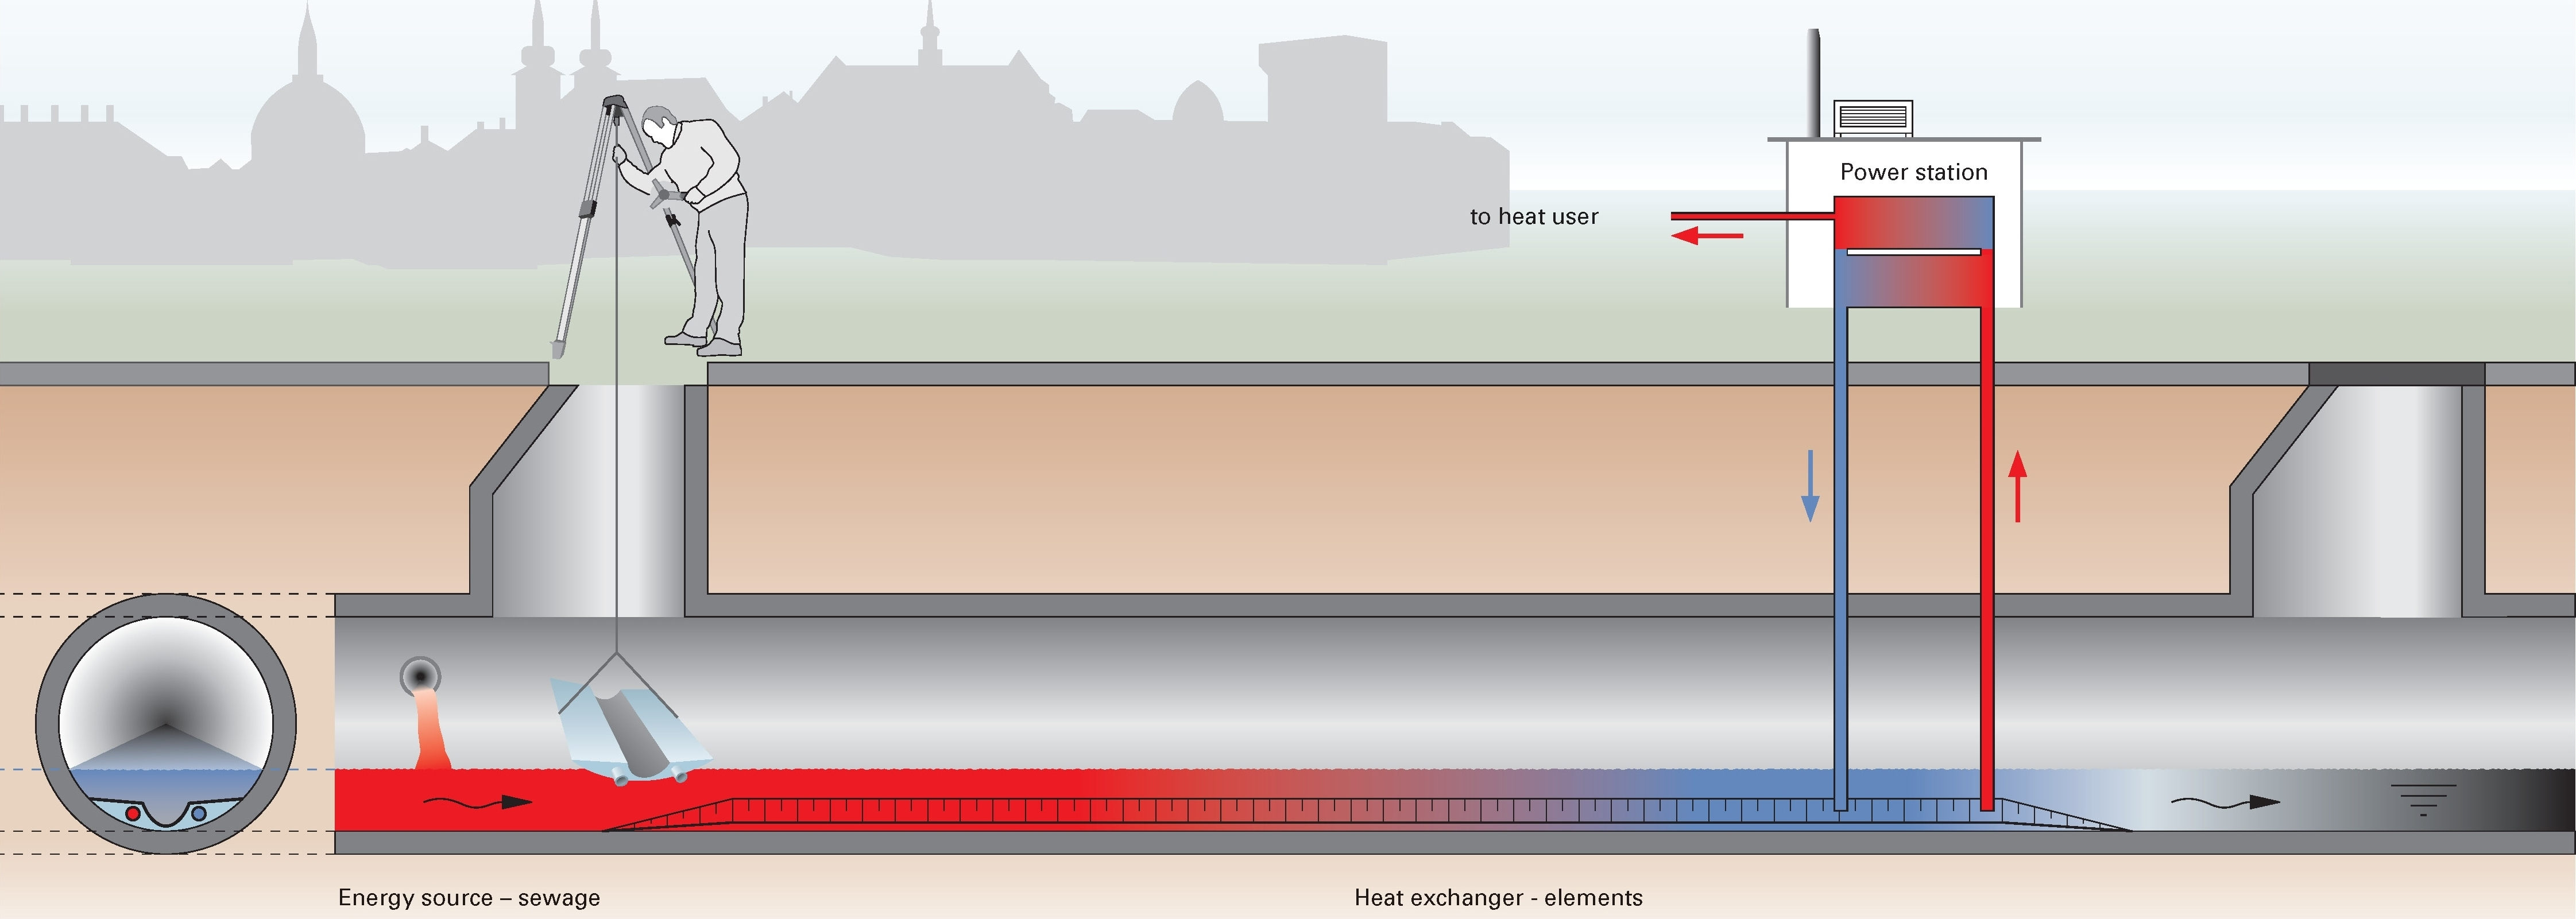 Recycled And Reutilised Heat Energy From Sewer Flows Aids Carbon Piping Schematic Ground Source Pump A Of The Therm Liner System Operation Uhrig Kanaltechnik Gmbh